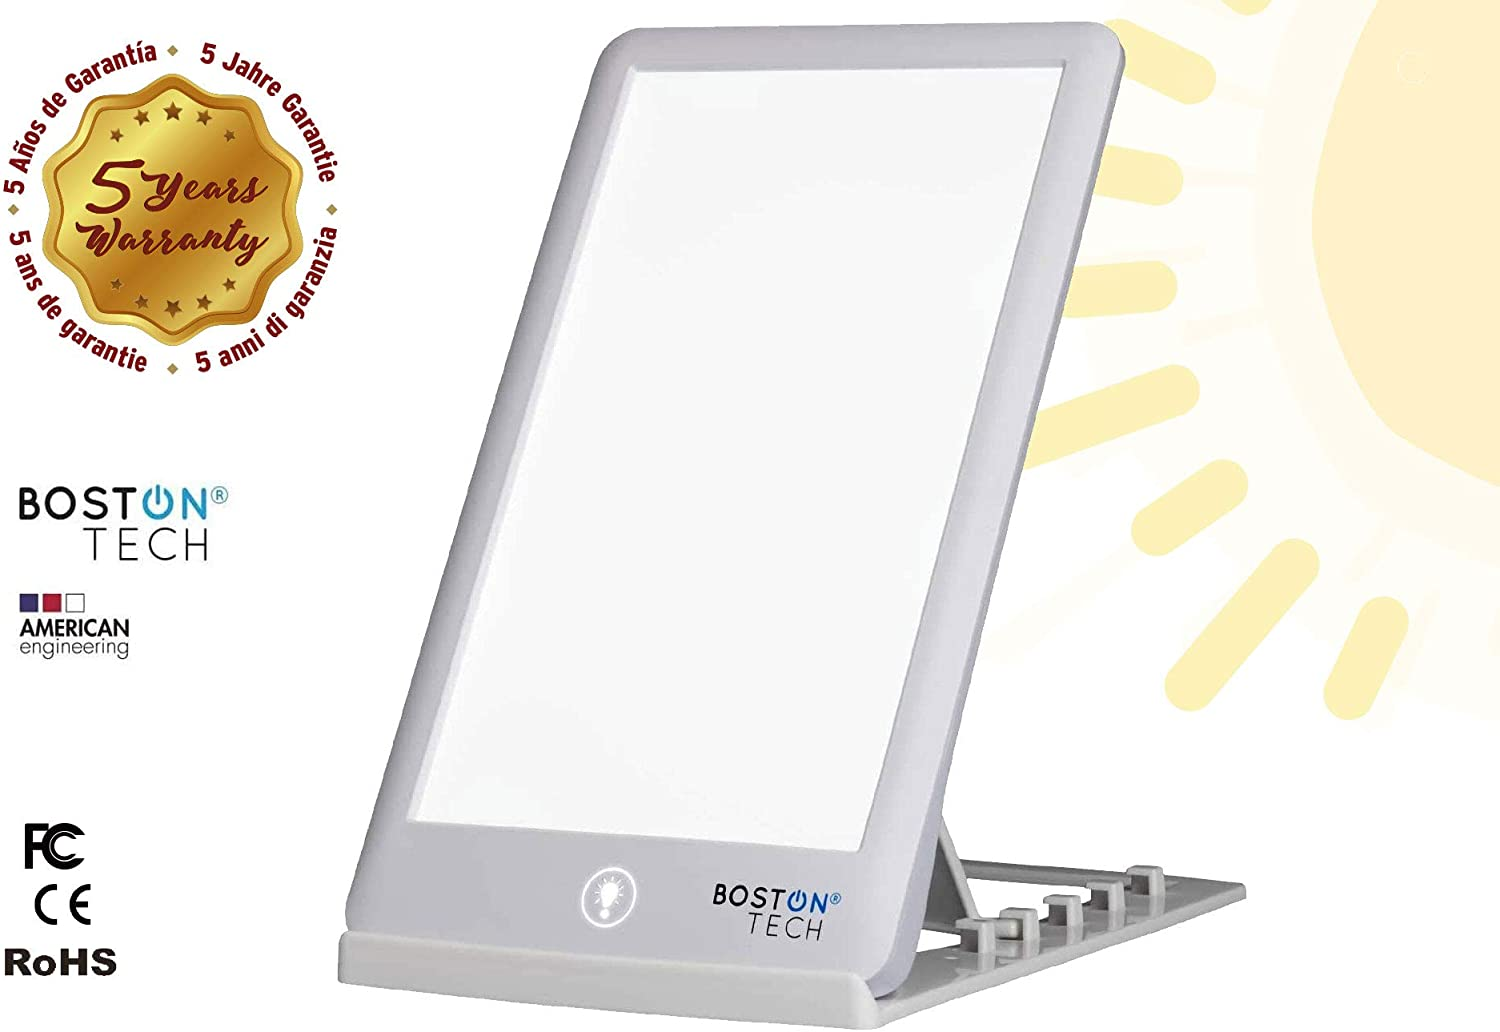 Boston Tech WE-113 – High Luminosity Portable Daylight Therapy Lamp, 15.000 Lux of Bright White Full Spectrum Light with 3 Diferent Intensity Levels and UV Free. LED Technology.